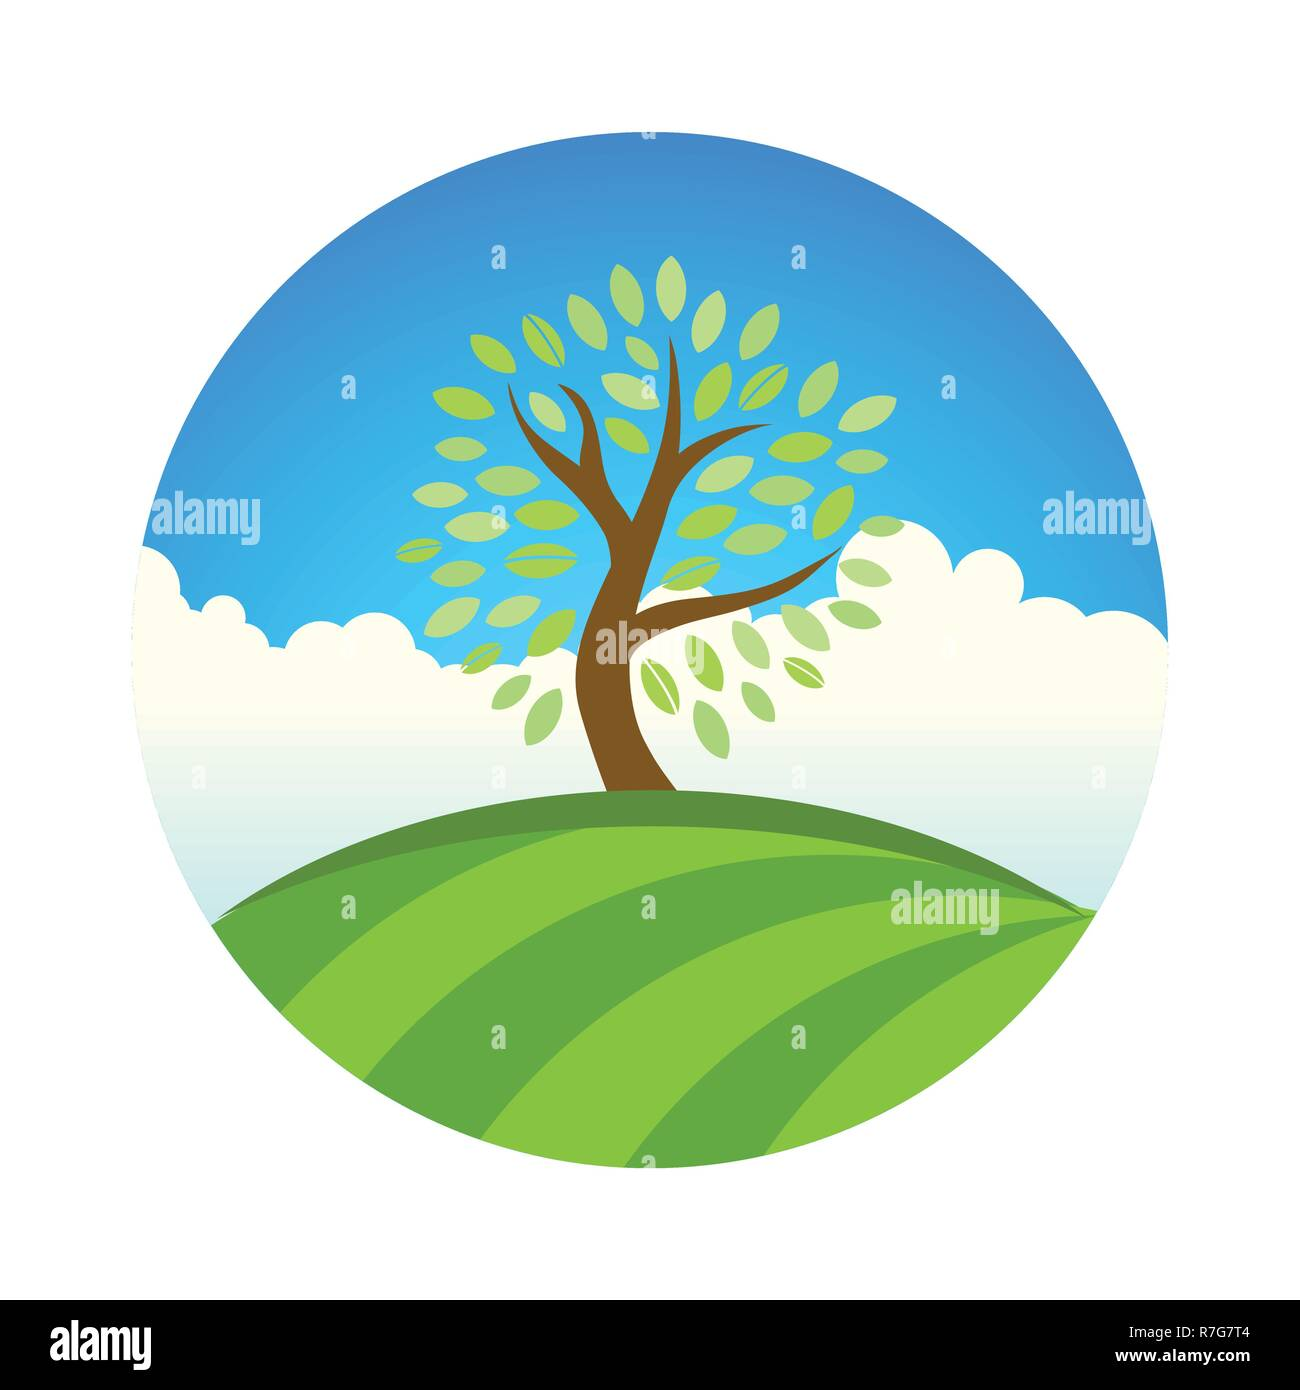 Logo with Landscape of eco garden or park, tree under blue sky. Vector illustration of natural fruit farm and harvest. - Stock Vector